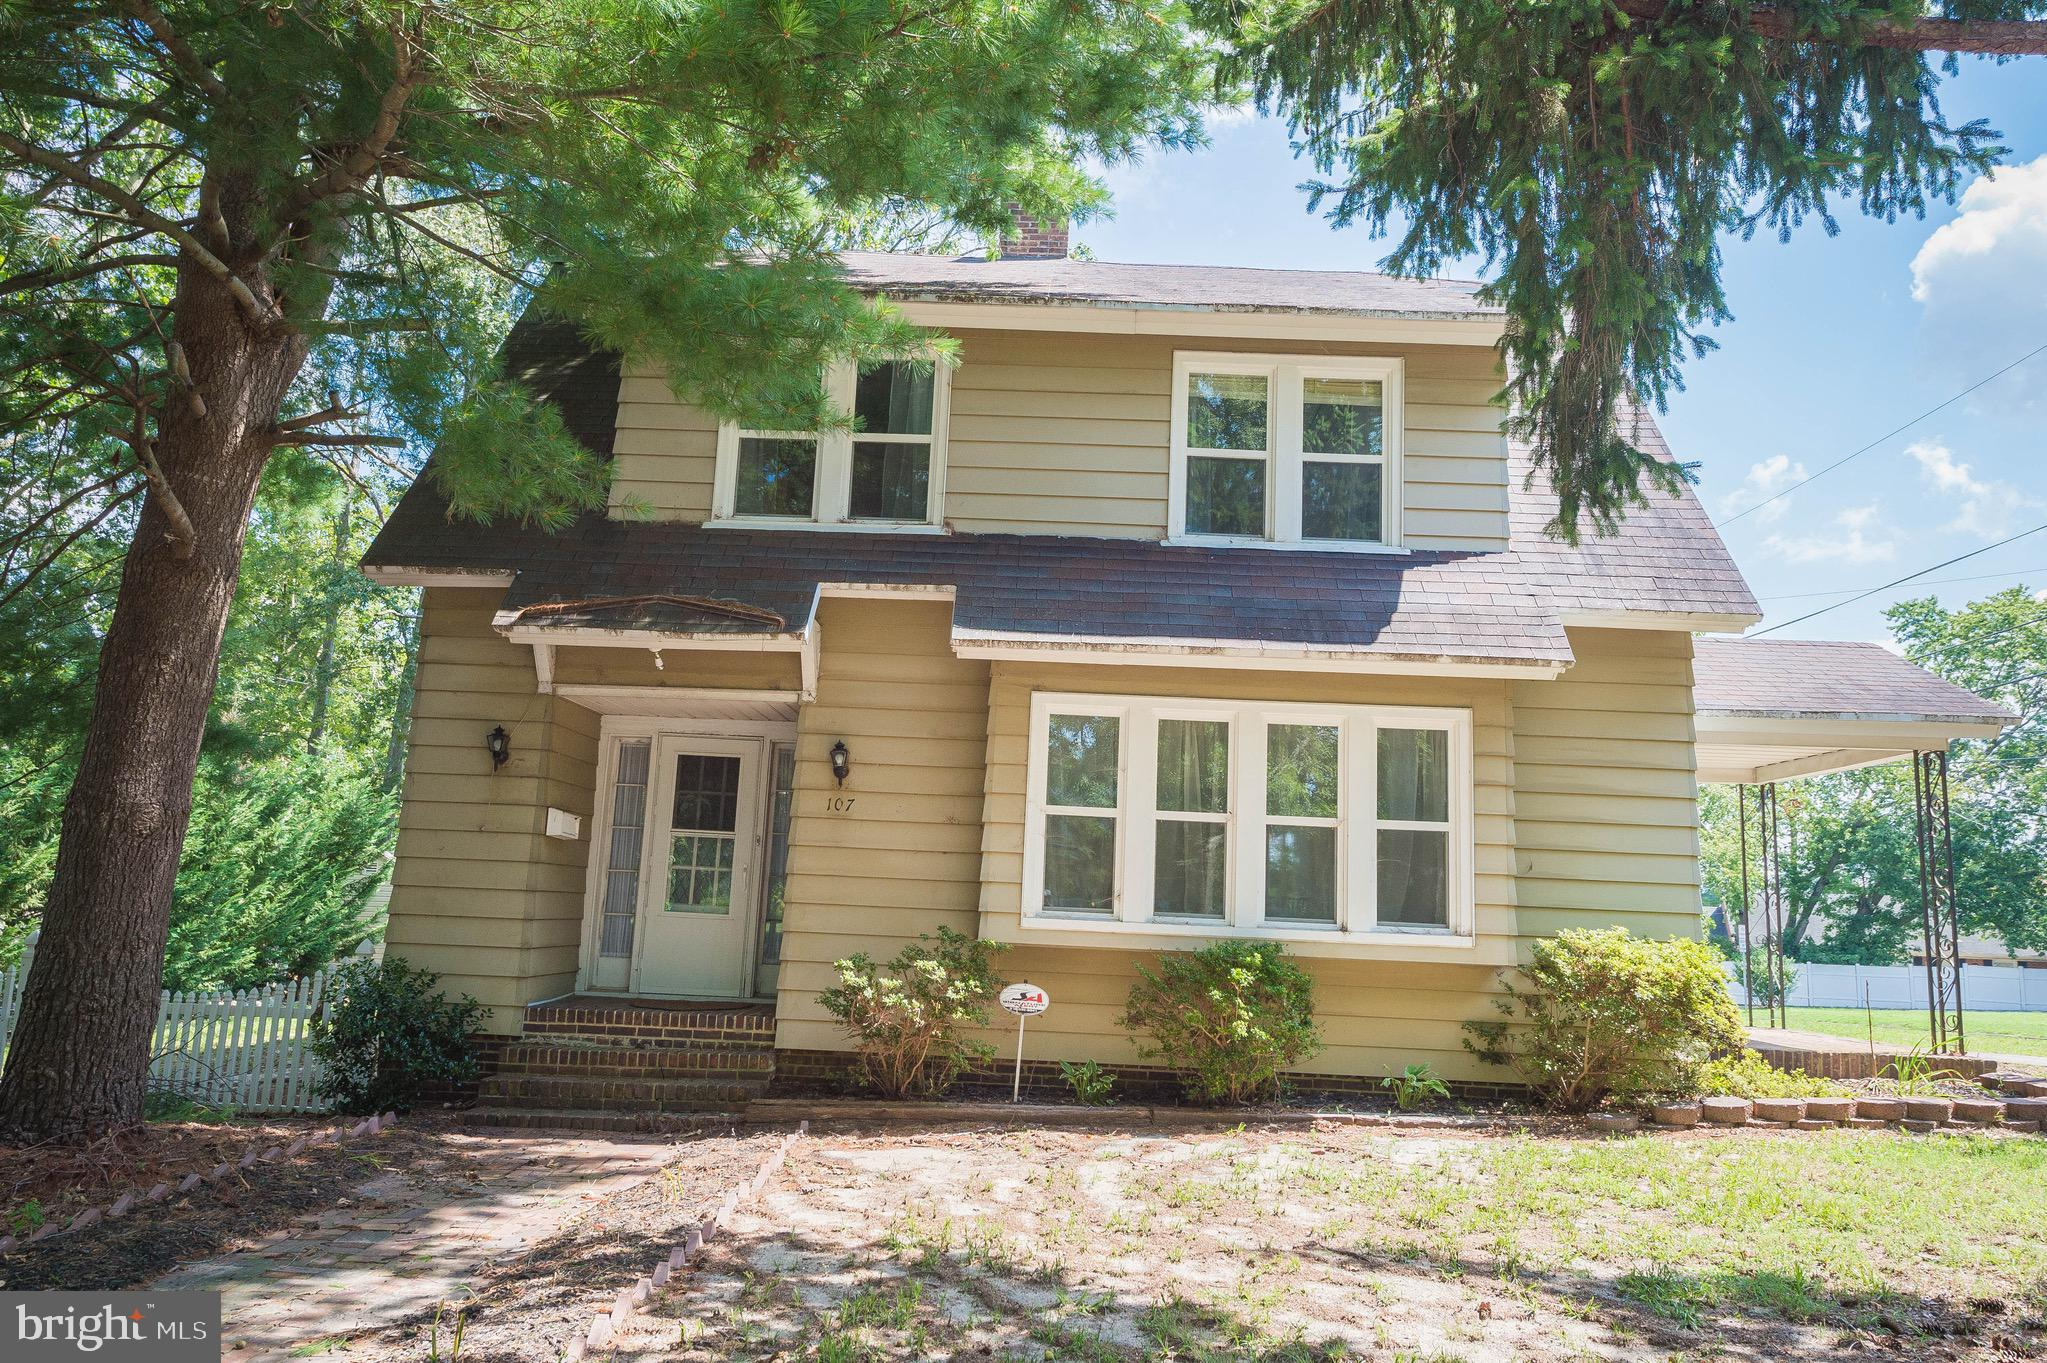 Adorable & Affordable --3-bedroom 1.5 bath colonial home centrally located in the heart of Salisbury